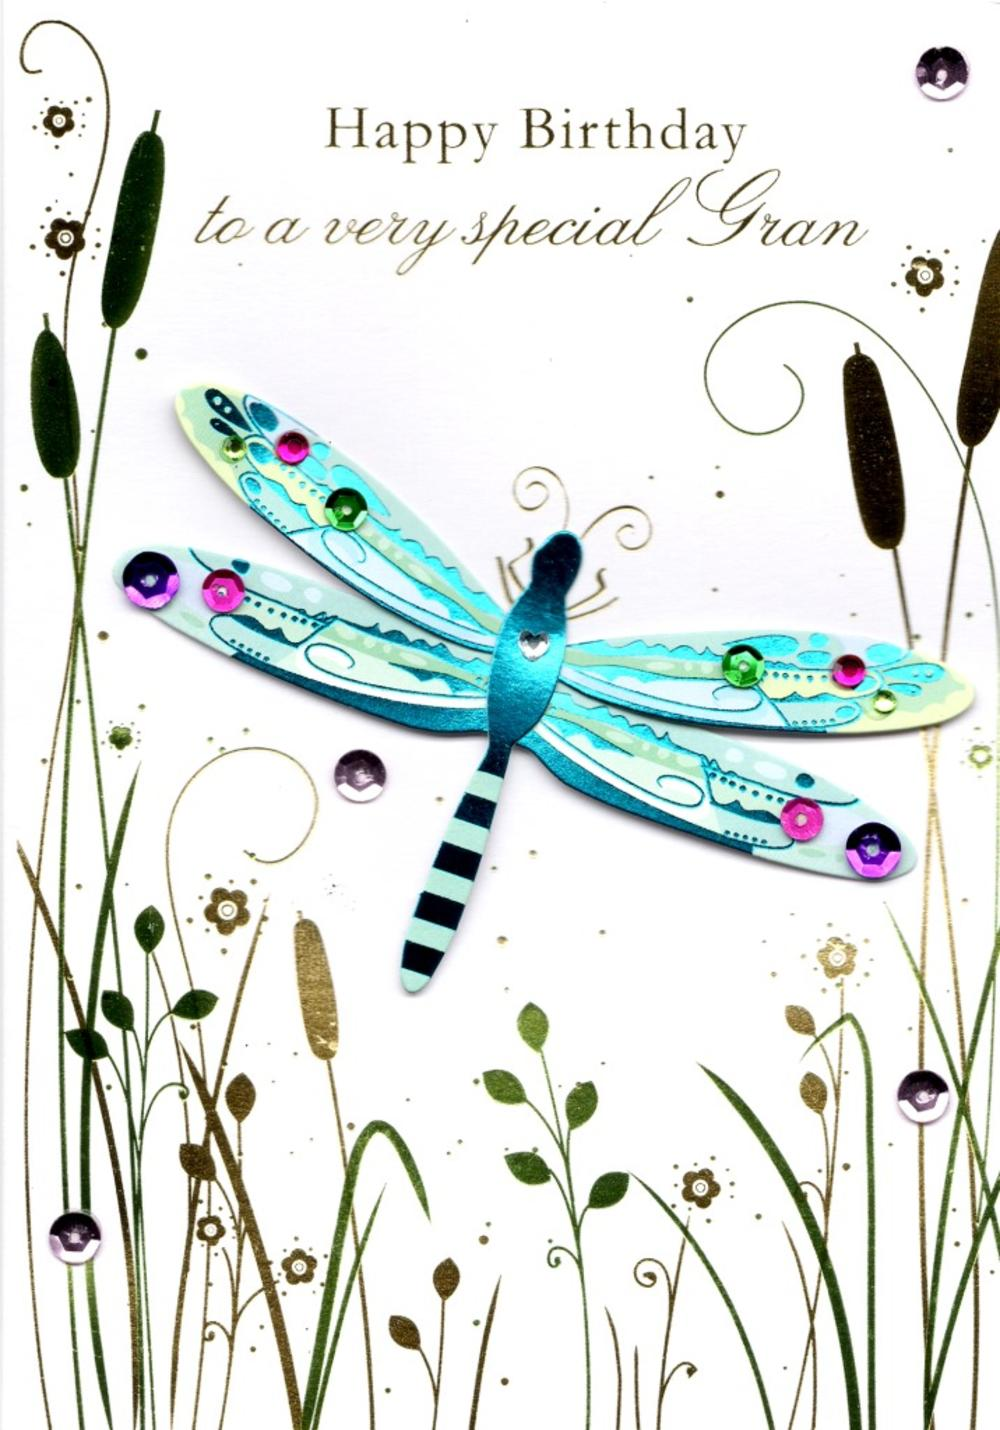 Special Gran Handmade Birthday Greeting Card